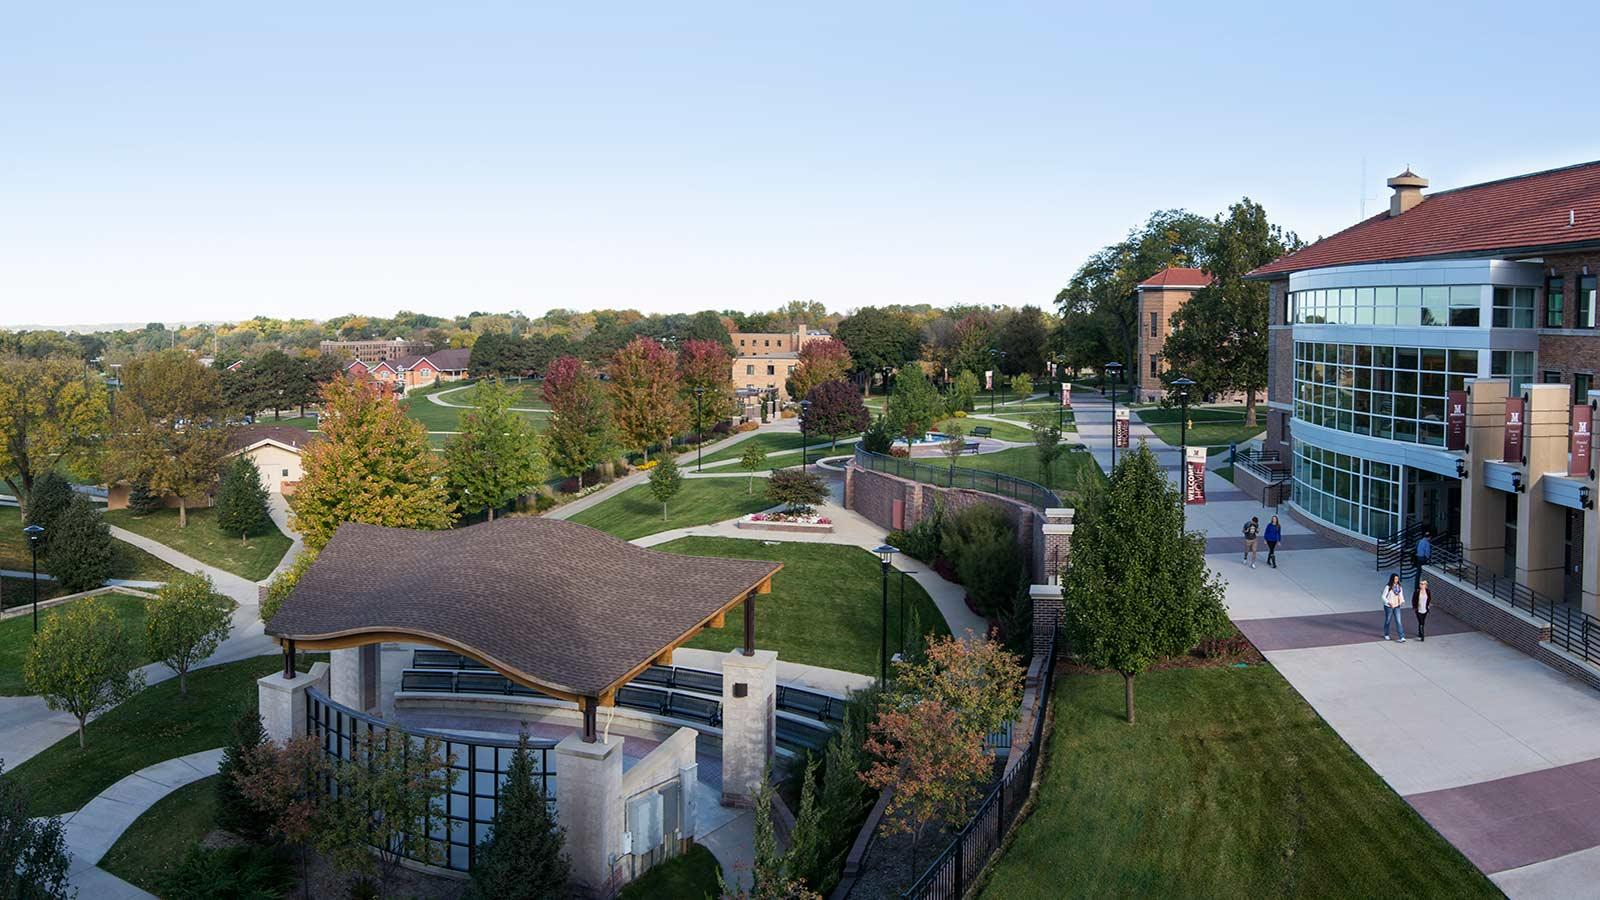 Panoramic photo of Morningside's campus